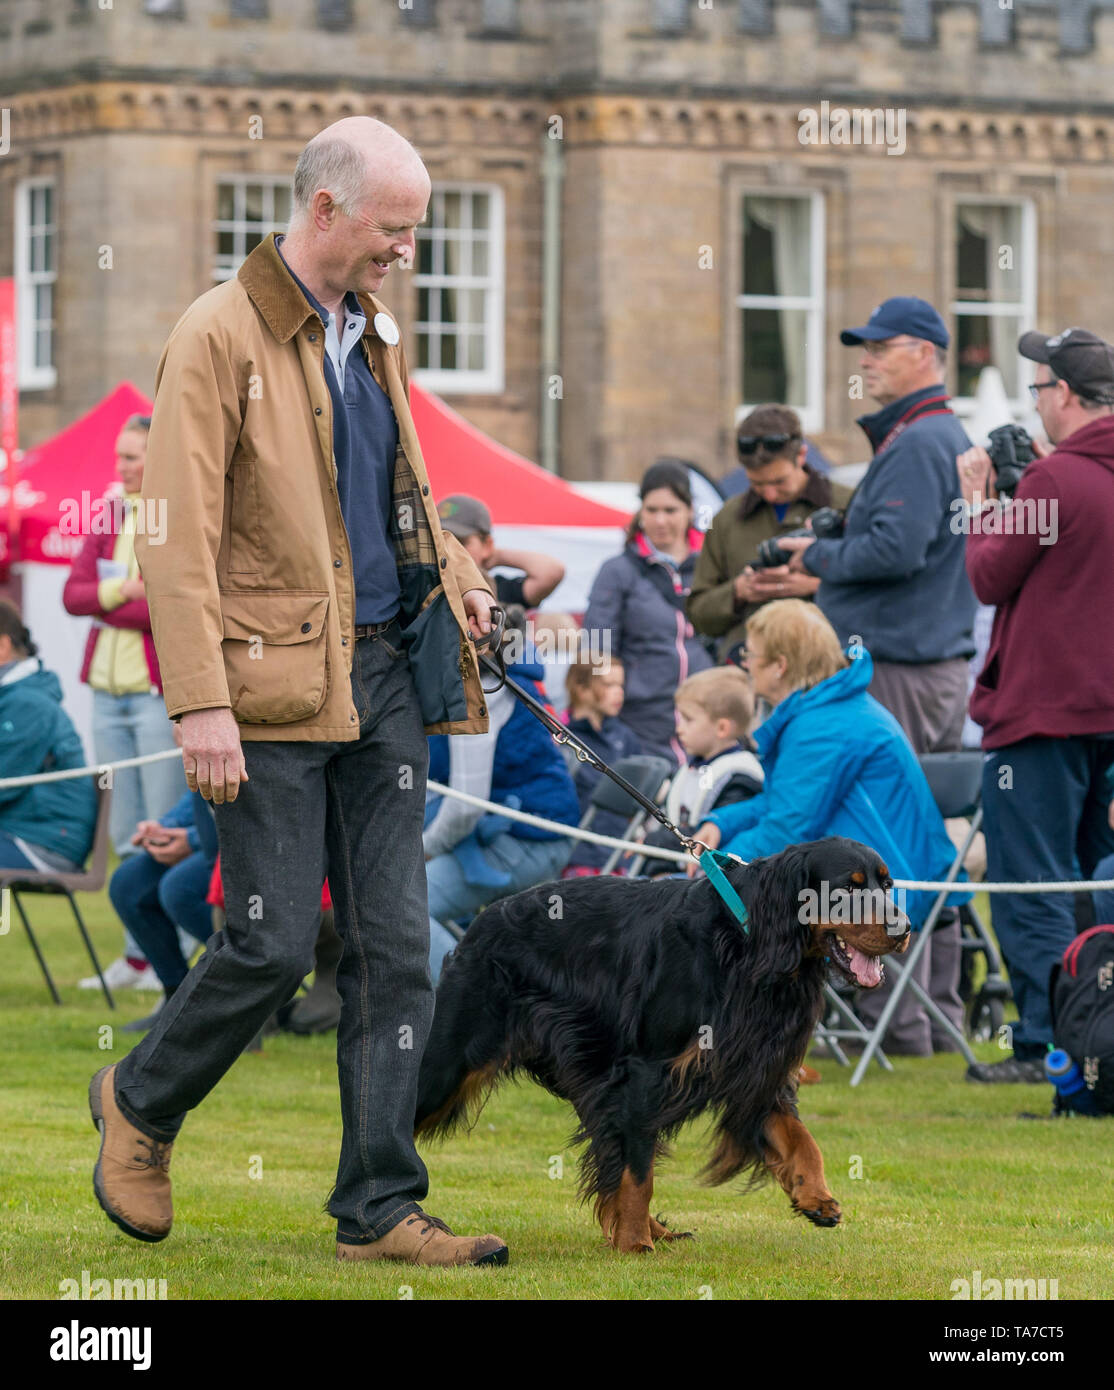 19 May 2019, Gordon Castle, Fochabers, Moray, Scotland, UK. This is a scene from the Highland Games and Country Fair. This is a Gordon Setters at the  - Stock Image